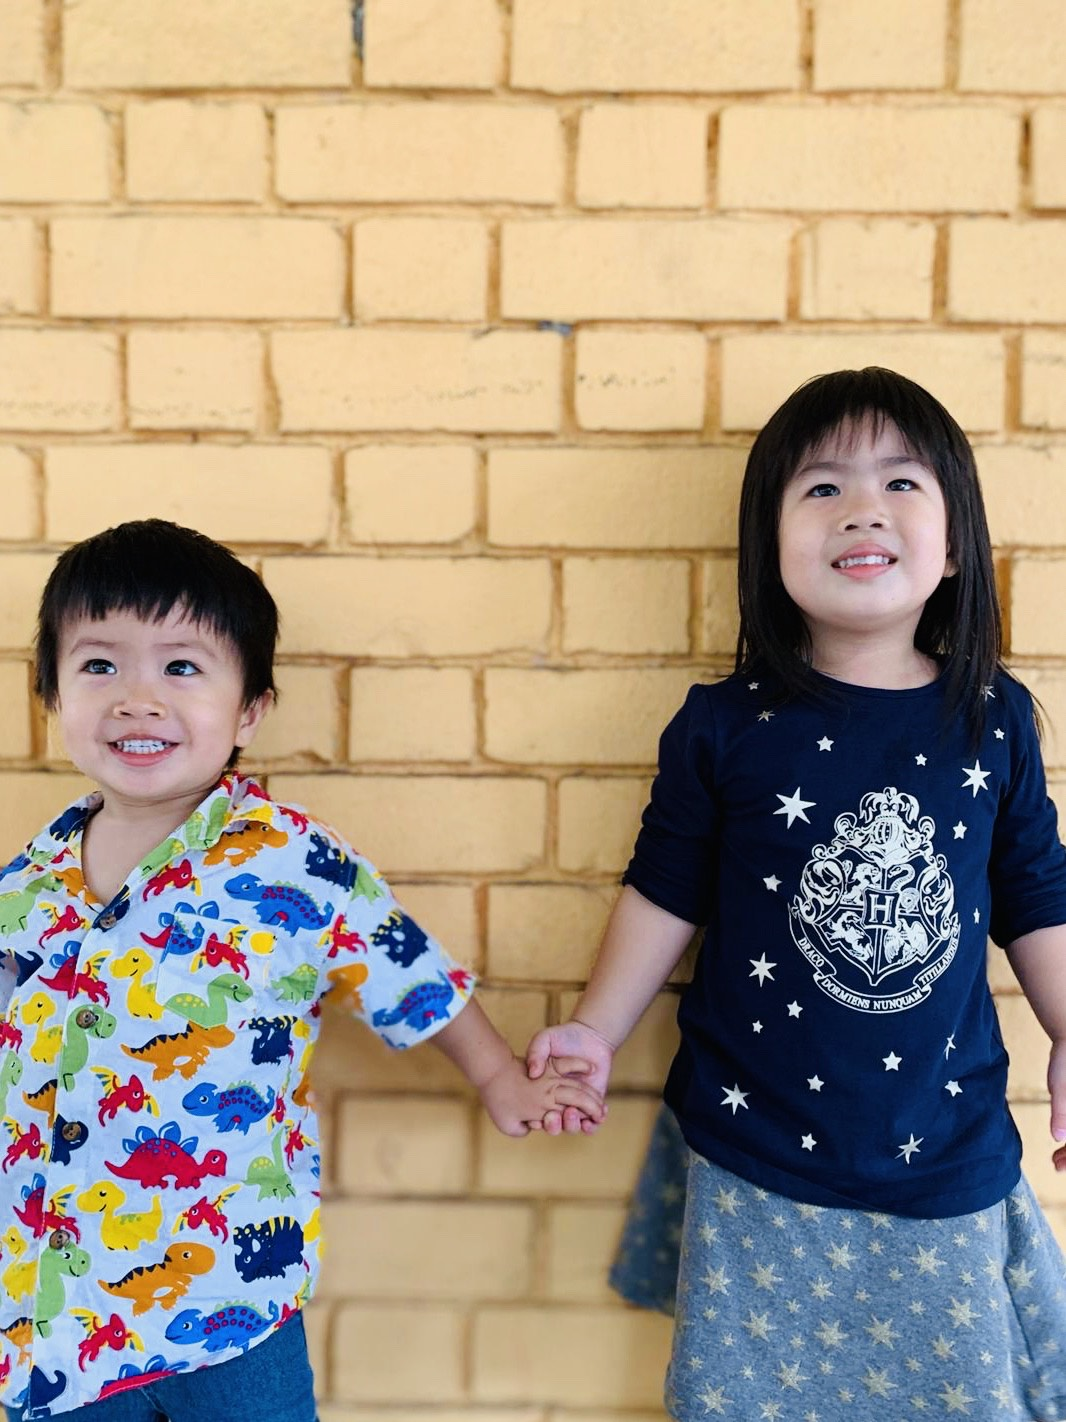 My beautiful children: Isaac, 2, and Valerie, 4.